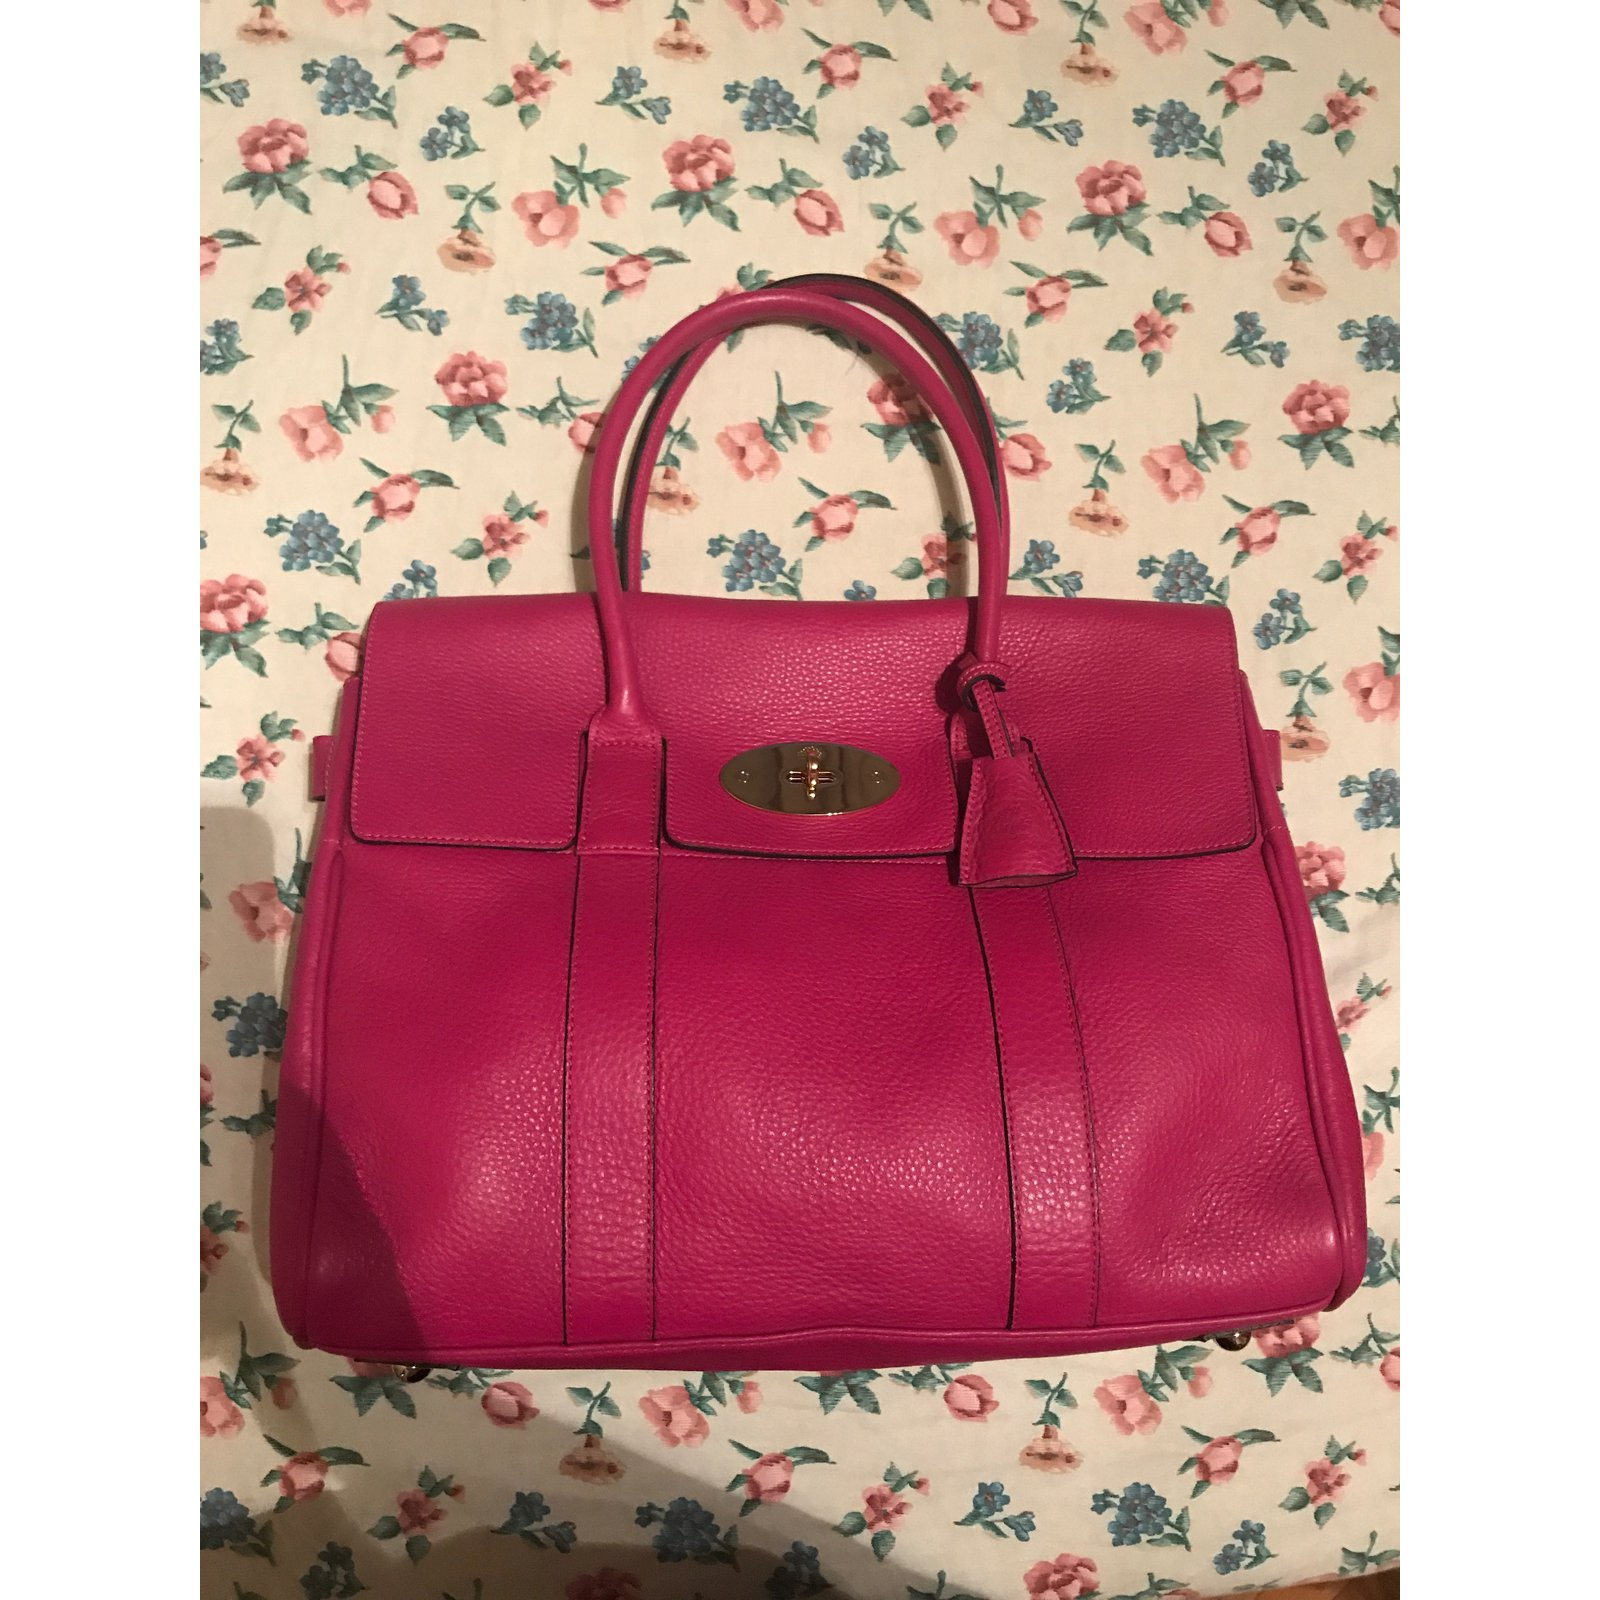 Facebook · Pin This. Mulberry Handbags Handbags Leather Pink ref.43264 06338a56a61eb